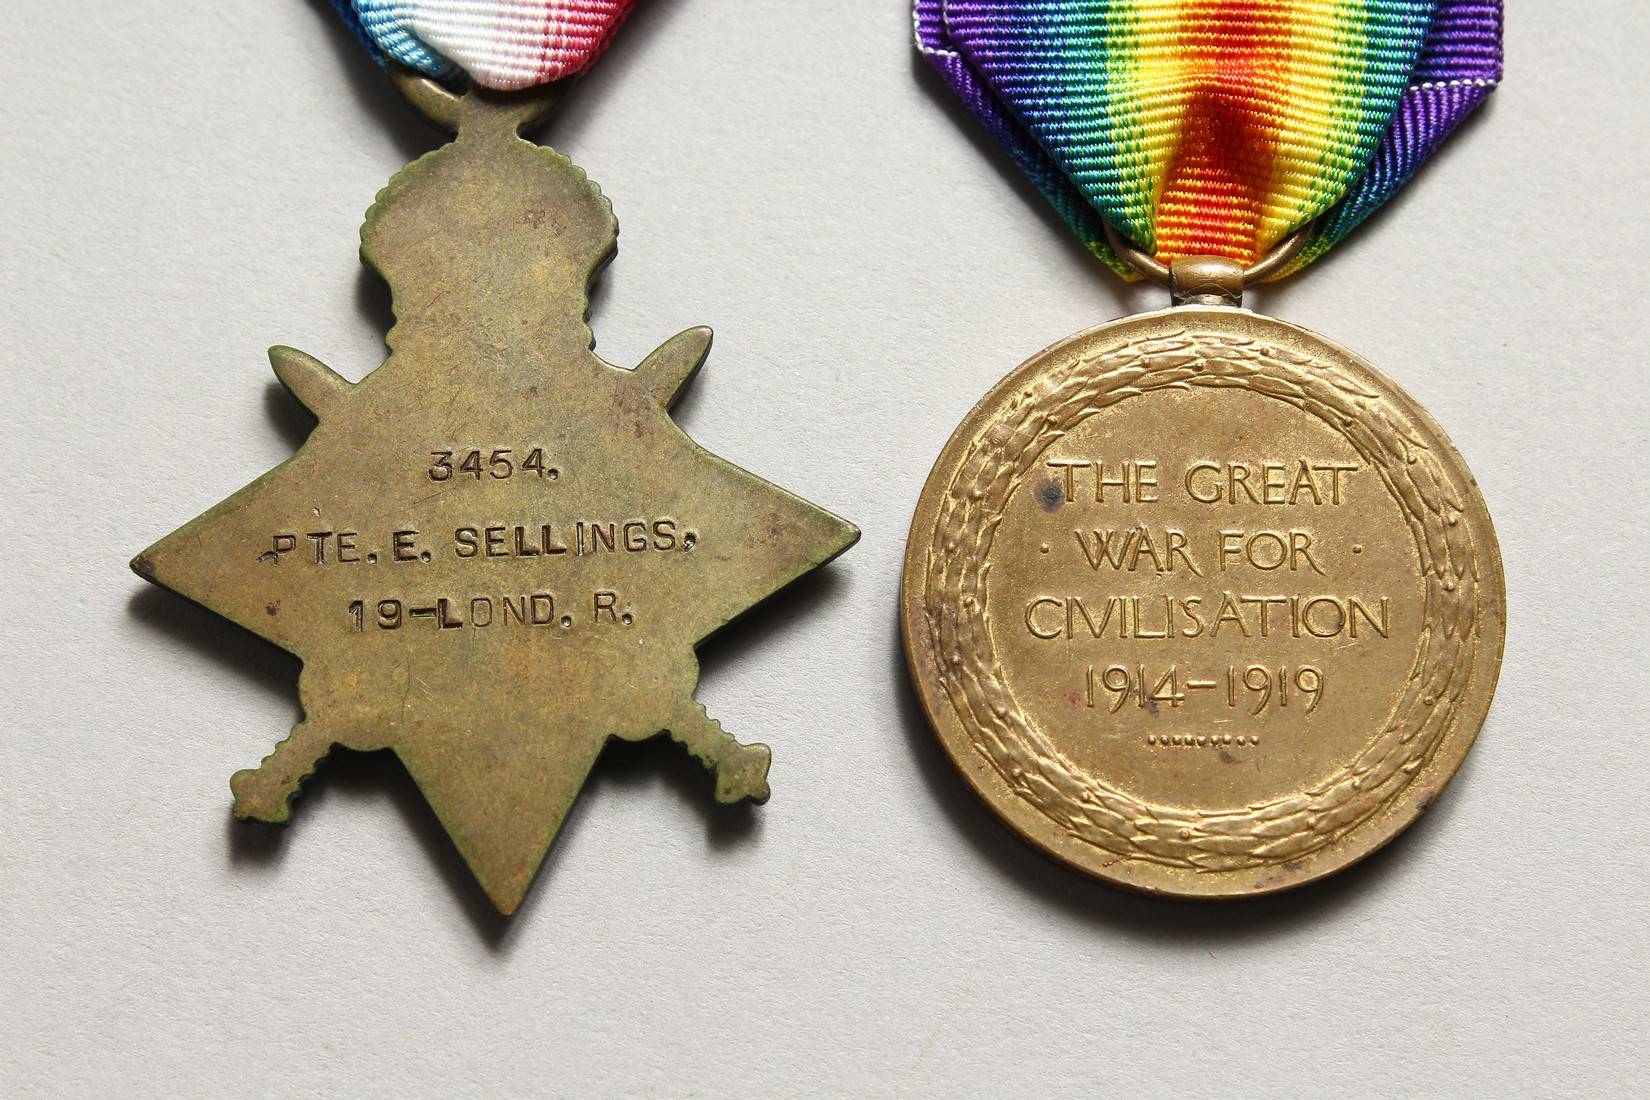 THE MEDALS OF ERNEST SELLINGS, 19 LONDON REG. 3454 610808. - Image 4 of 7